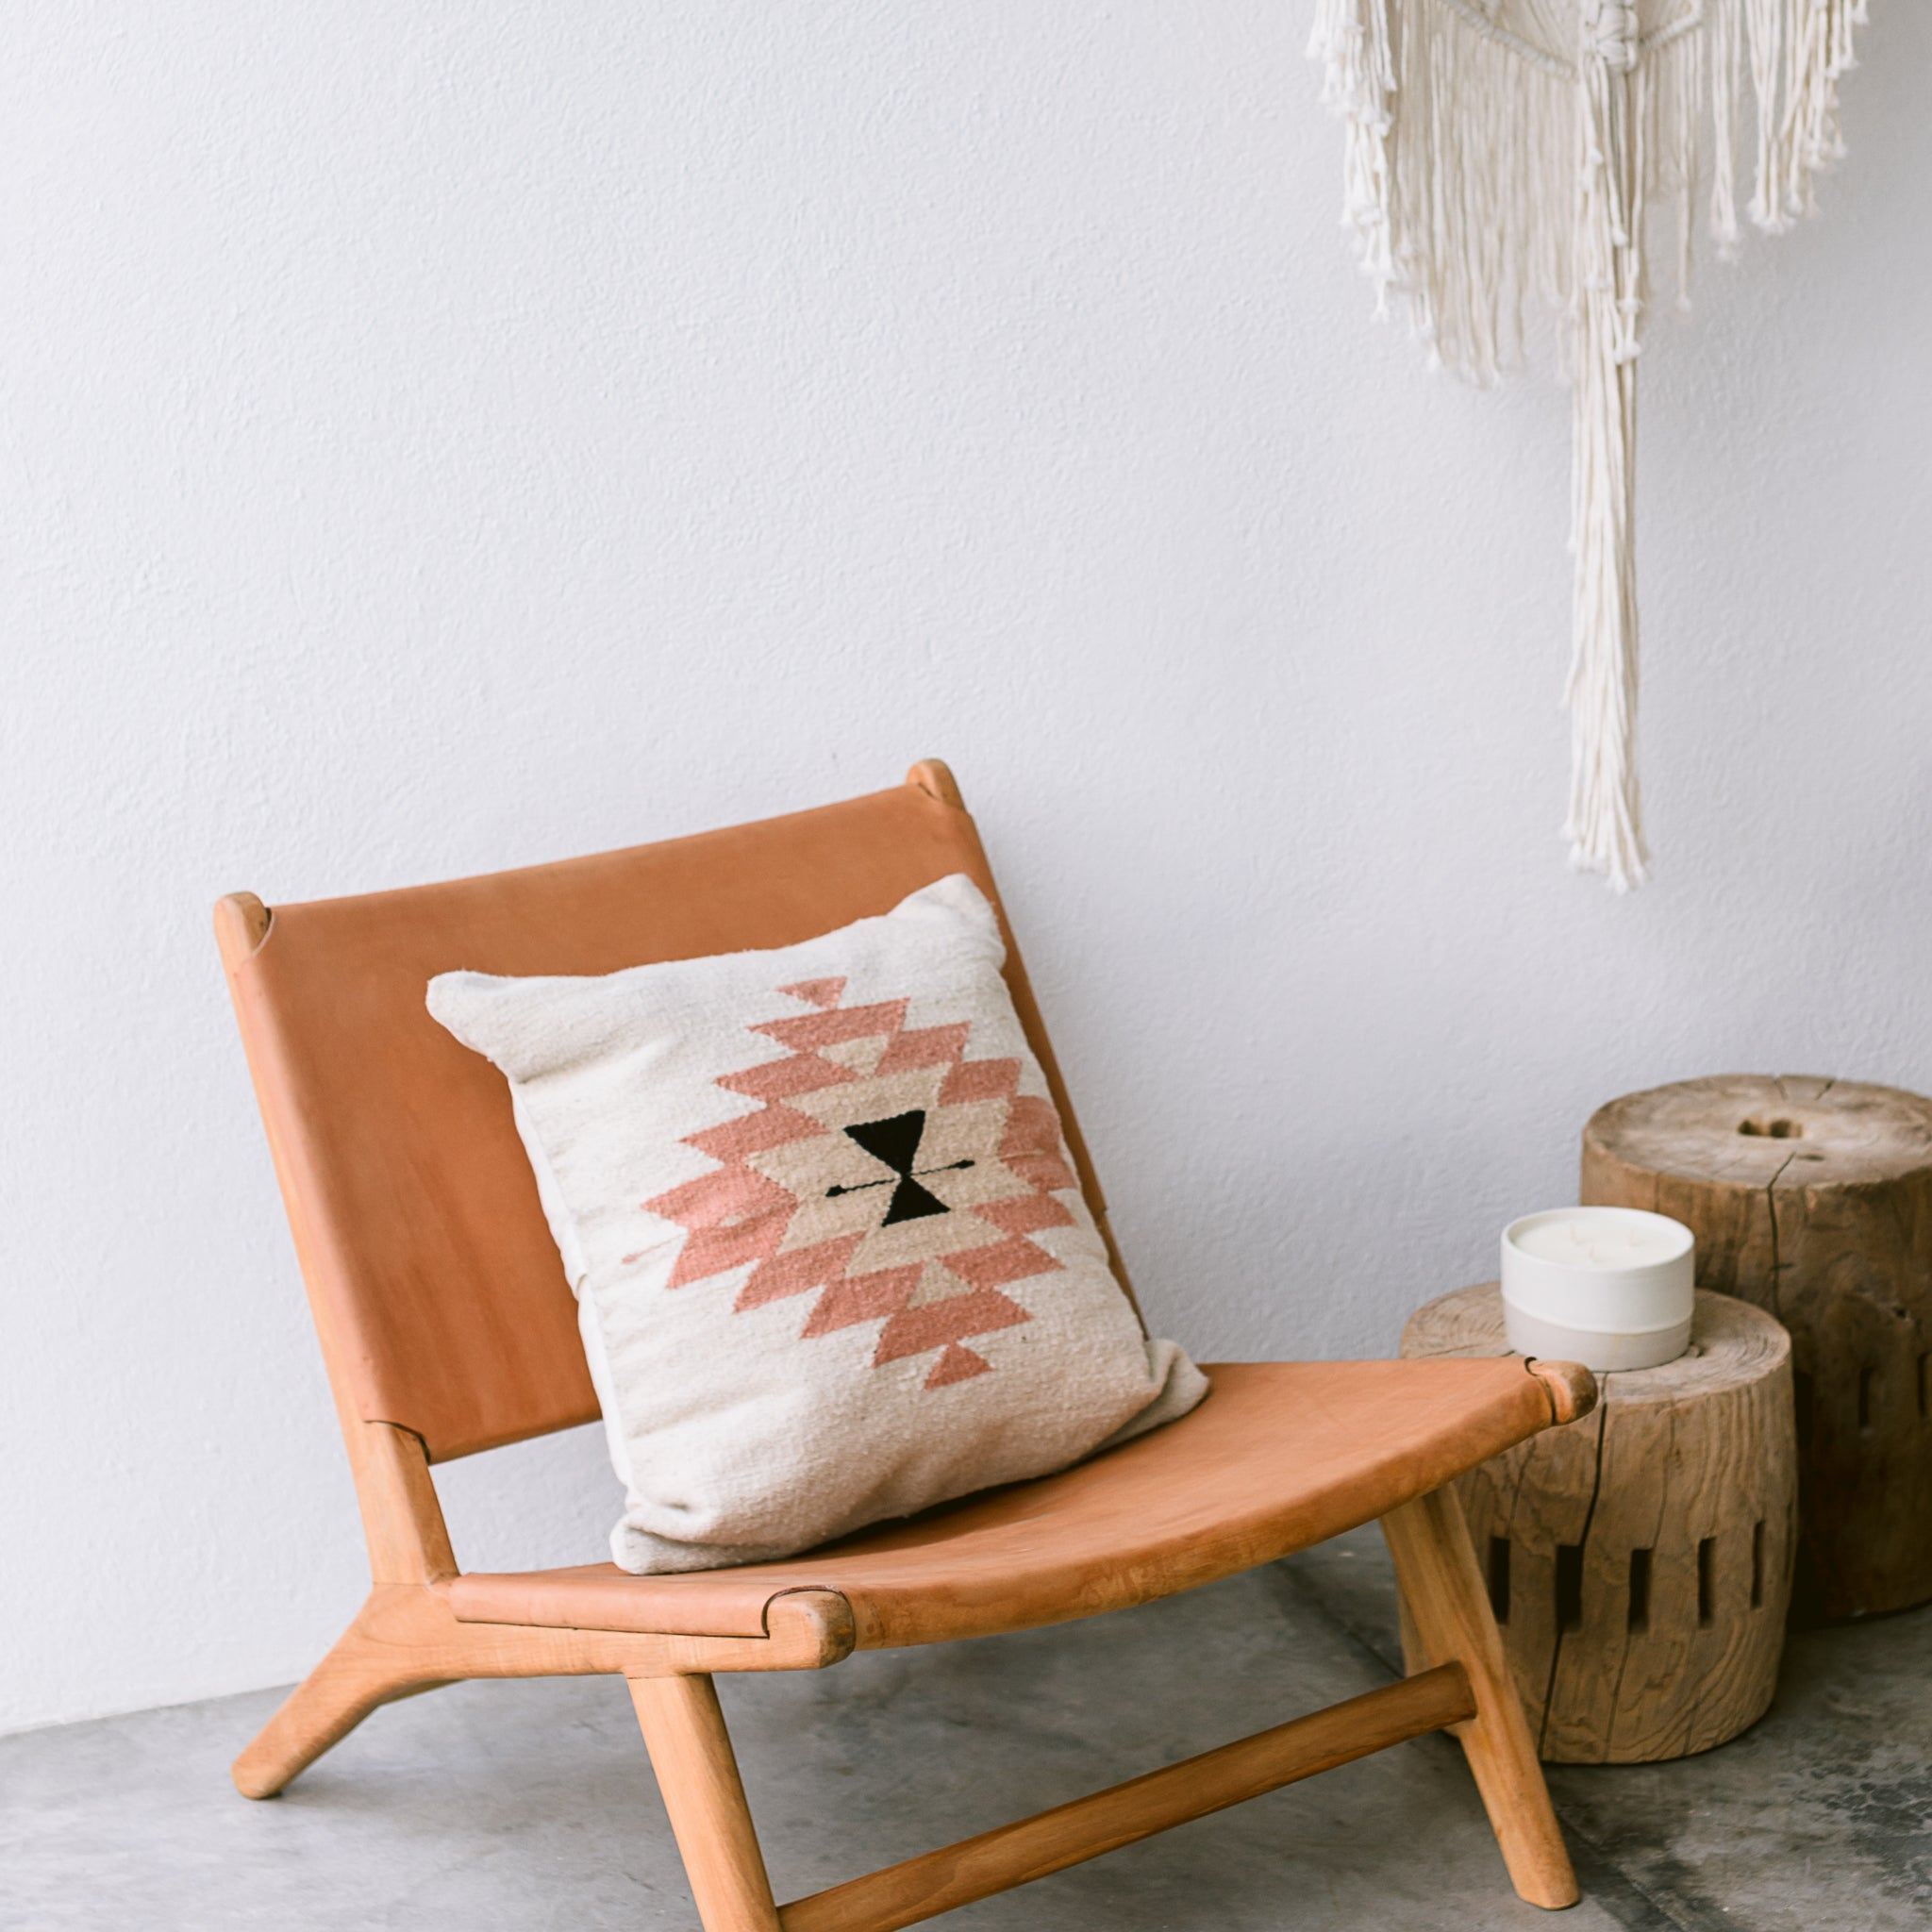 A handwoven wool throw pillow featuring Zapotec designs and desert-inspired colors is arranged on a leather chair with small wood side tables.